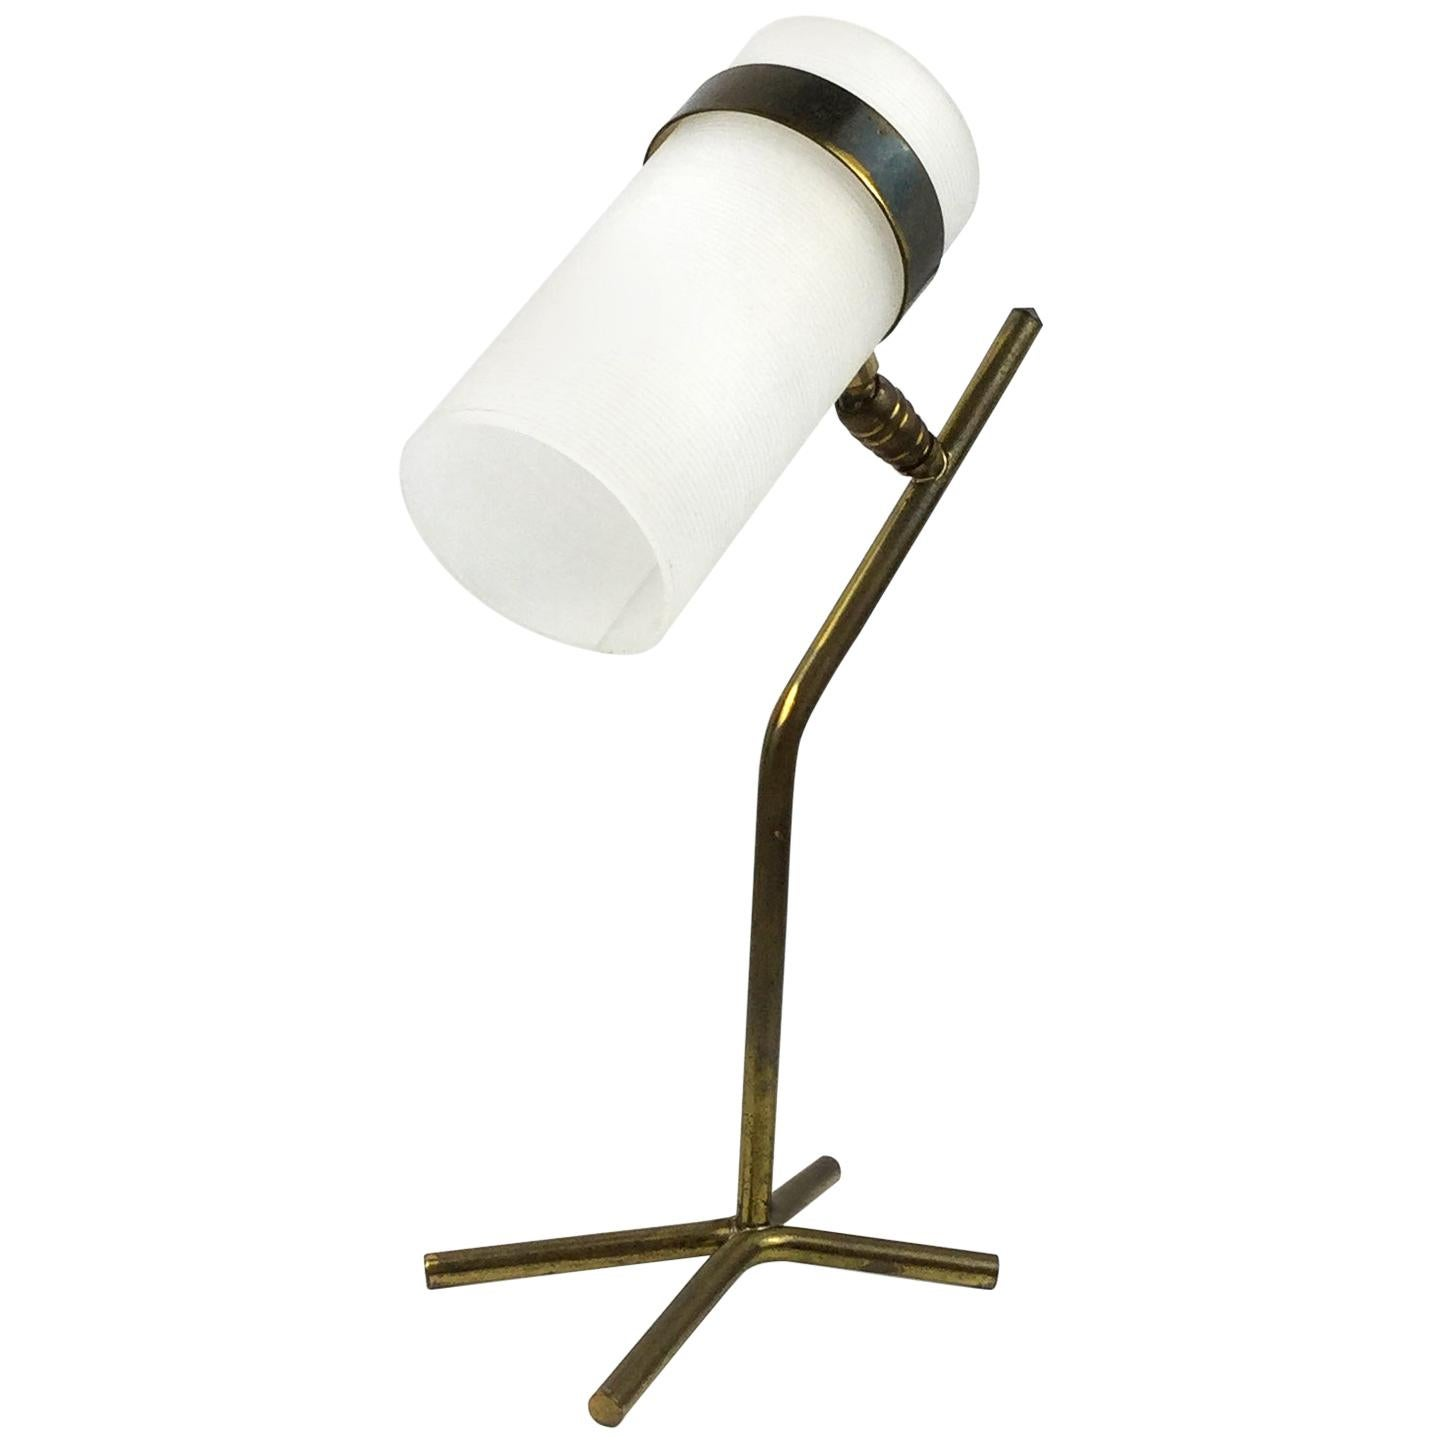 Table Lamp Attributed to Pierre Guariche and Jean Boris Lacroix France 1950s